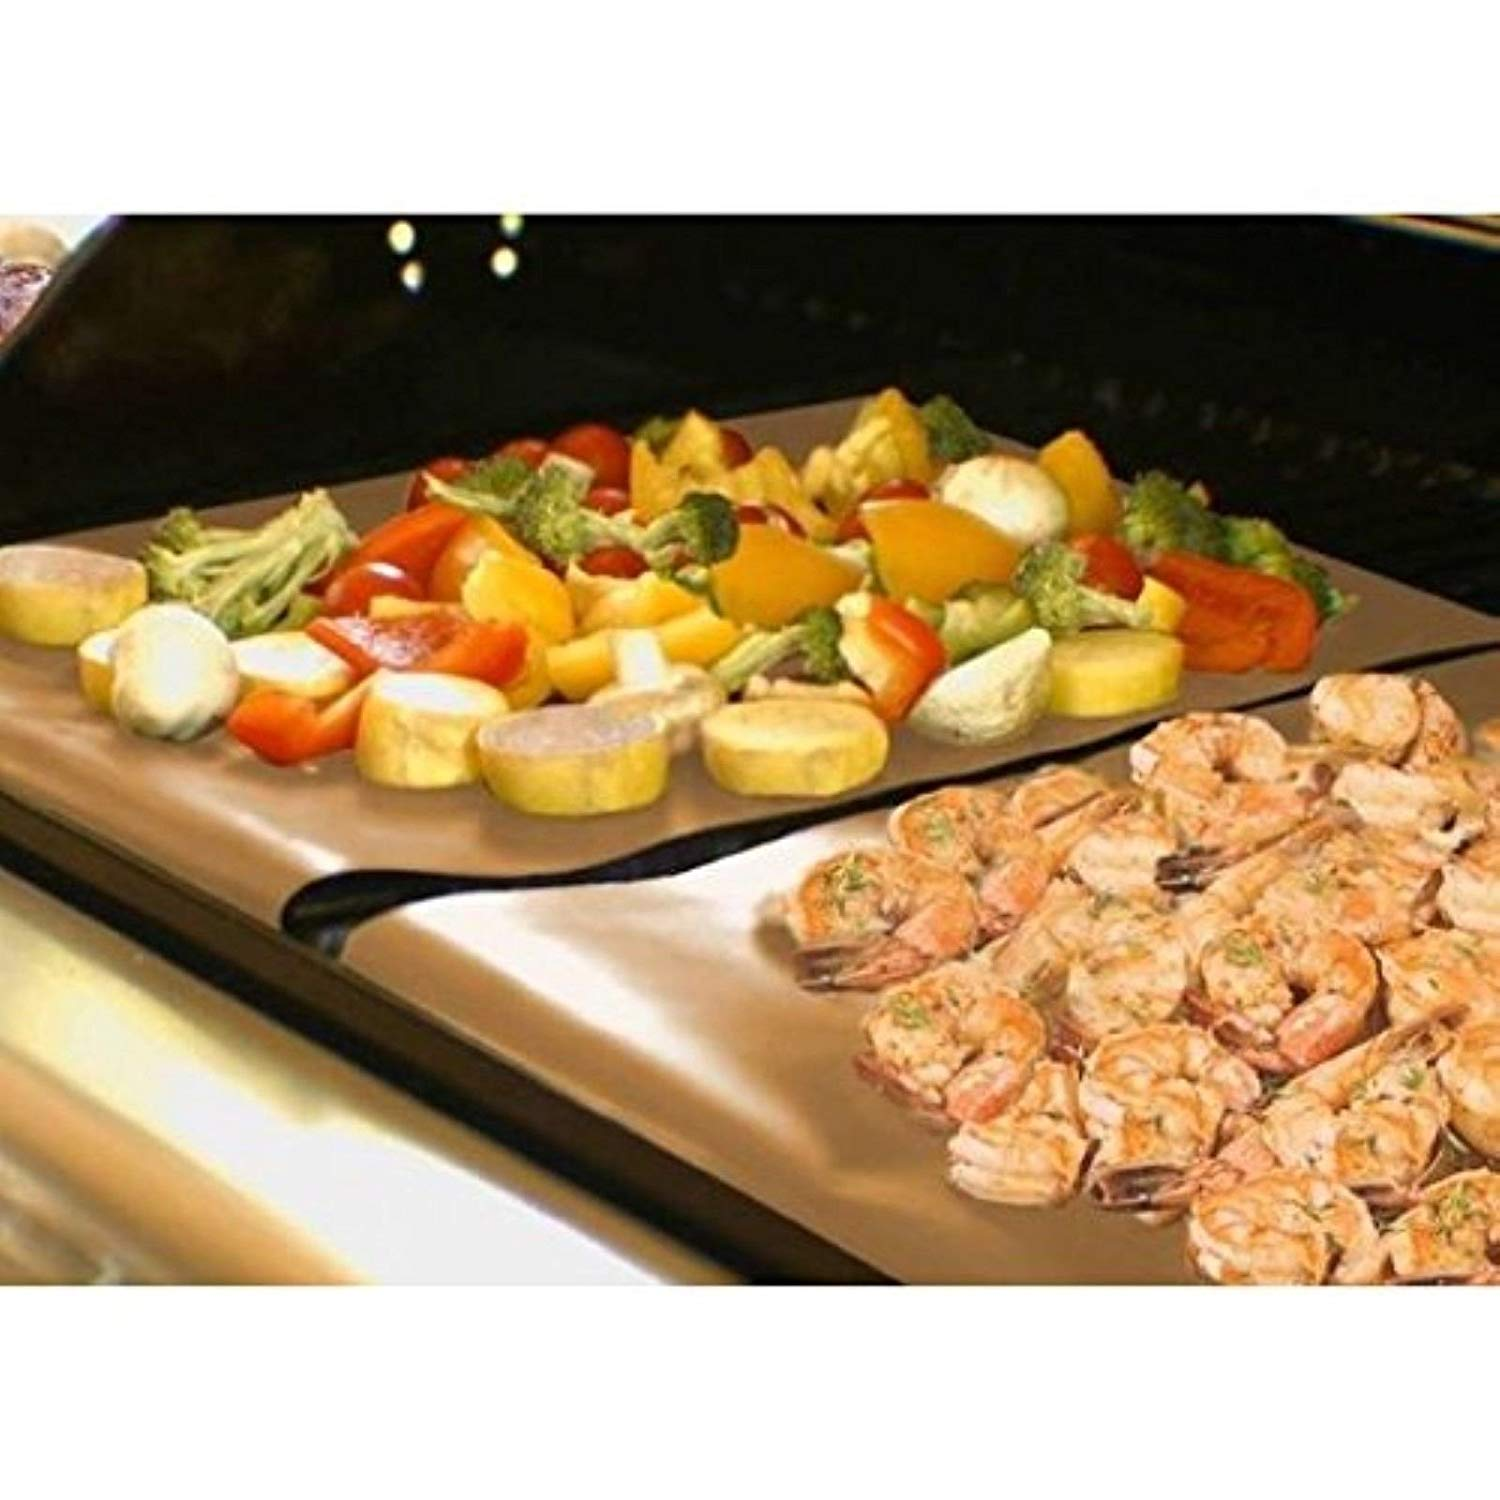 [WALLER PAA] 2 Grill And Bake Mat BBQ Grilling Reusable Non-Stick